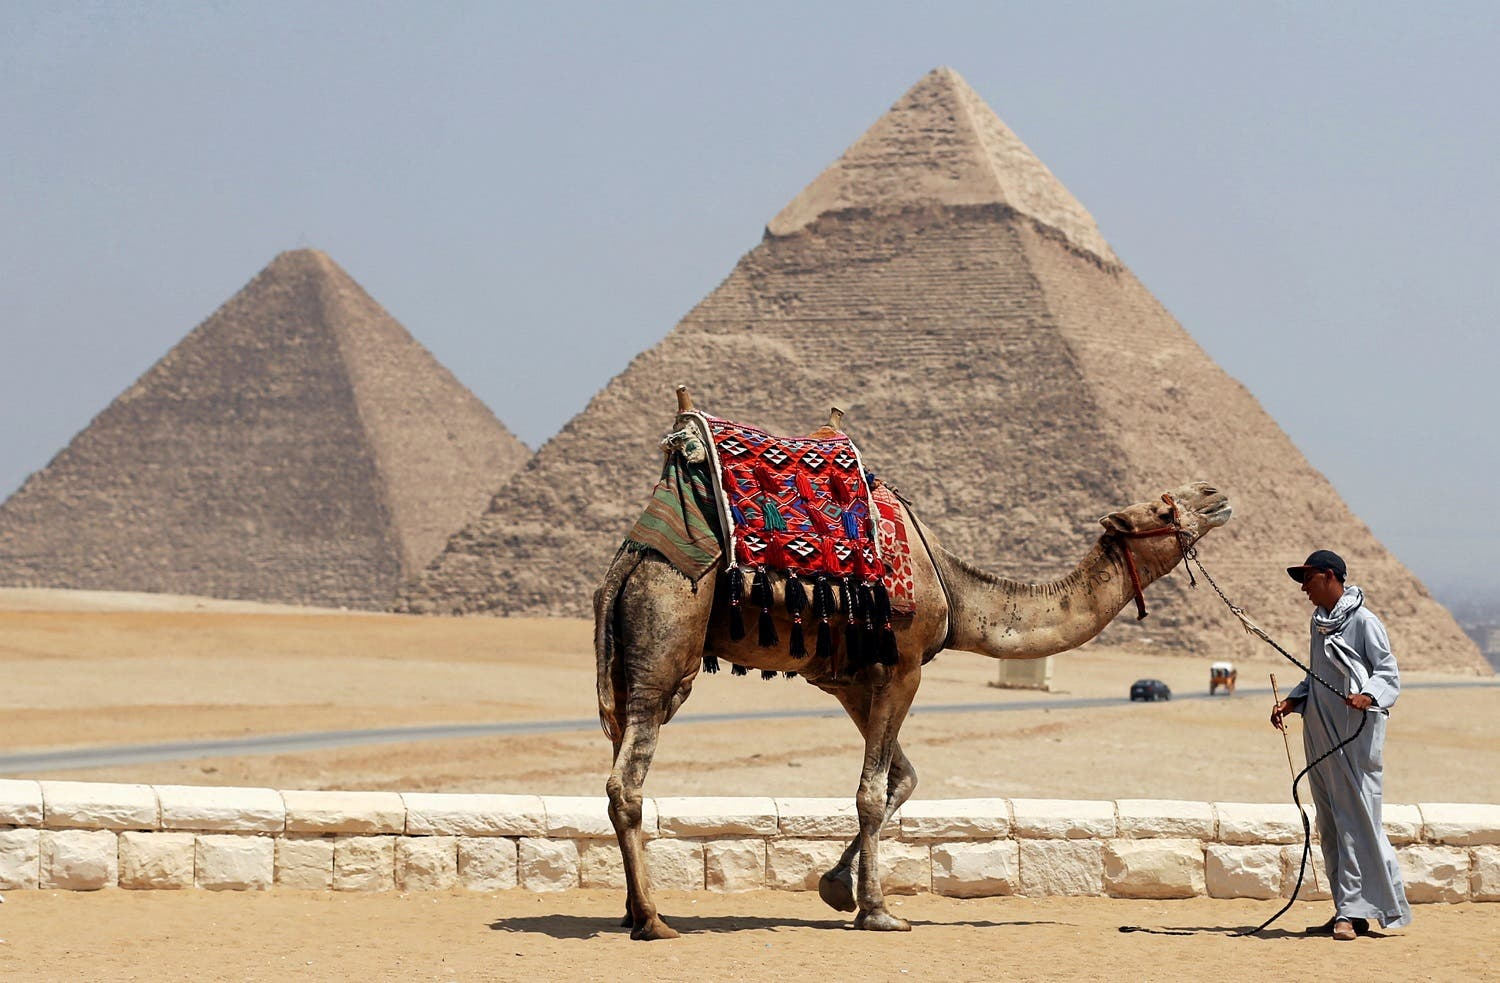 A man waits for tourists to rent his camel in front of the Great Giza pyramids on the outskirts of Cairo, Egypt, August 31, 2016. (Reuters)